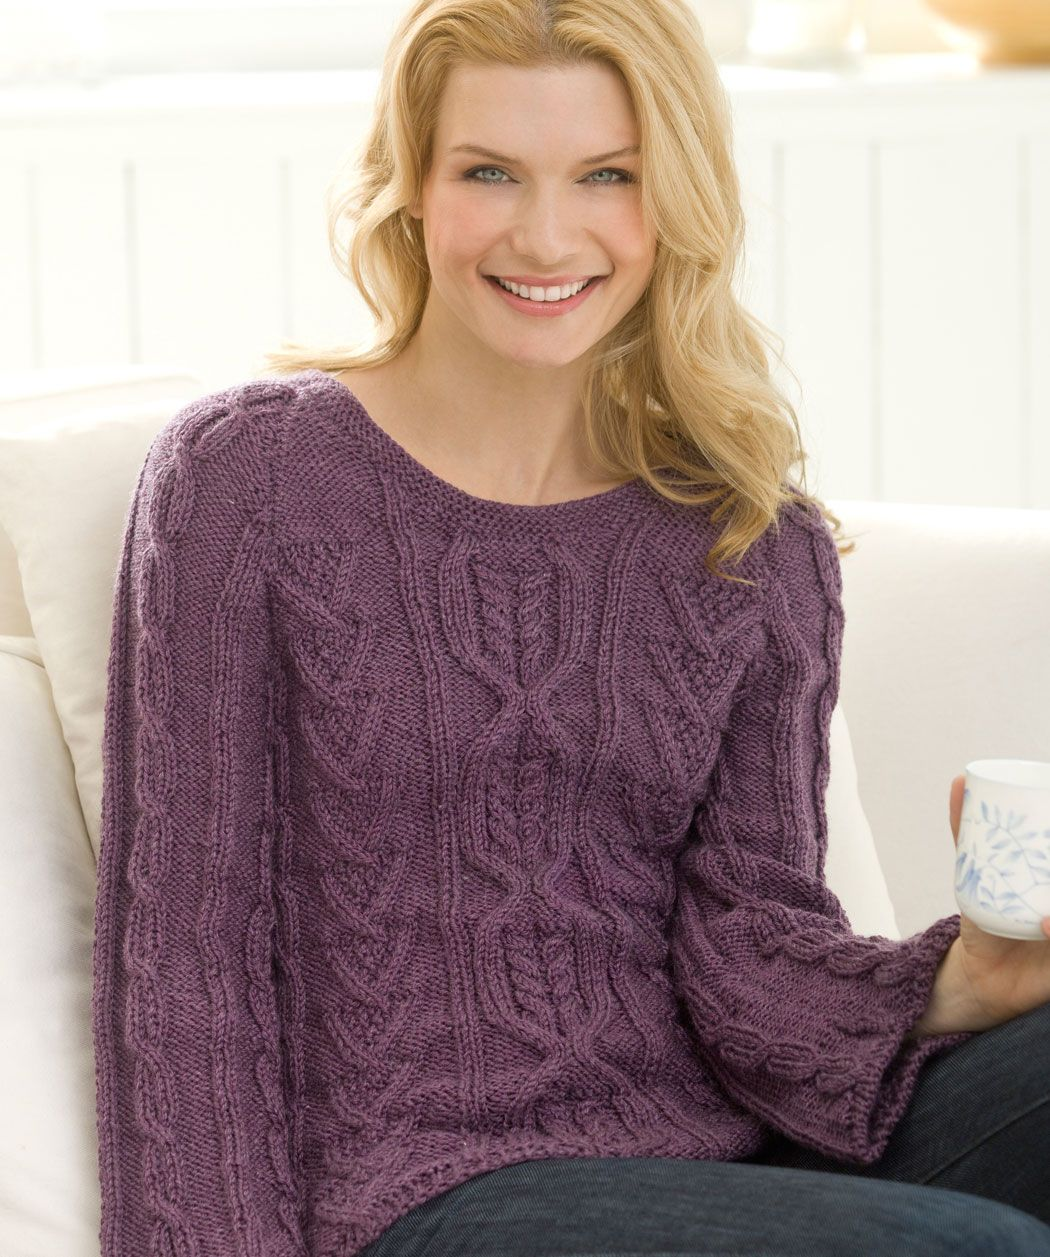 New Aran Sweater - My mouth hit the floor when I saw that its a Red Hear...